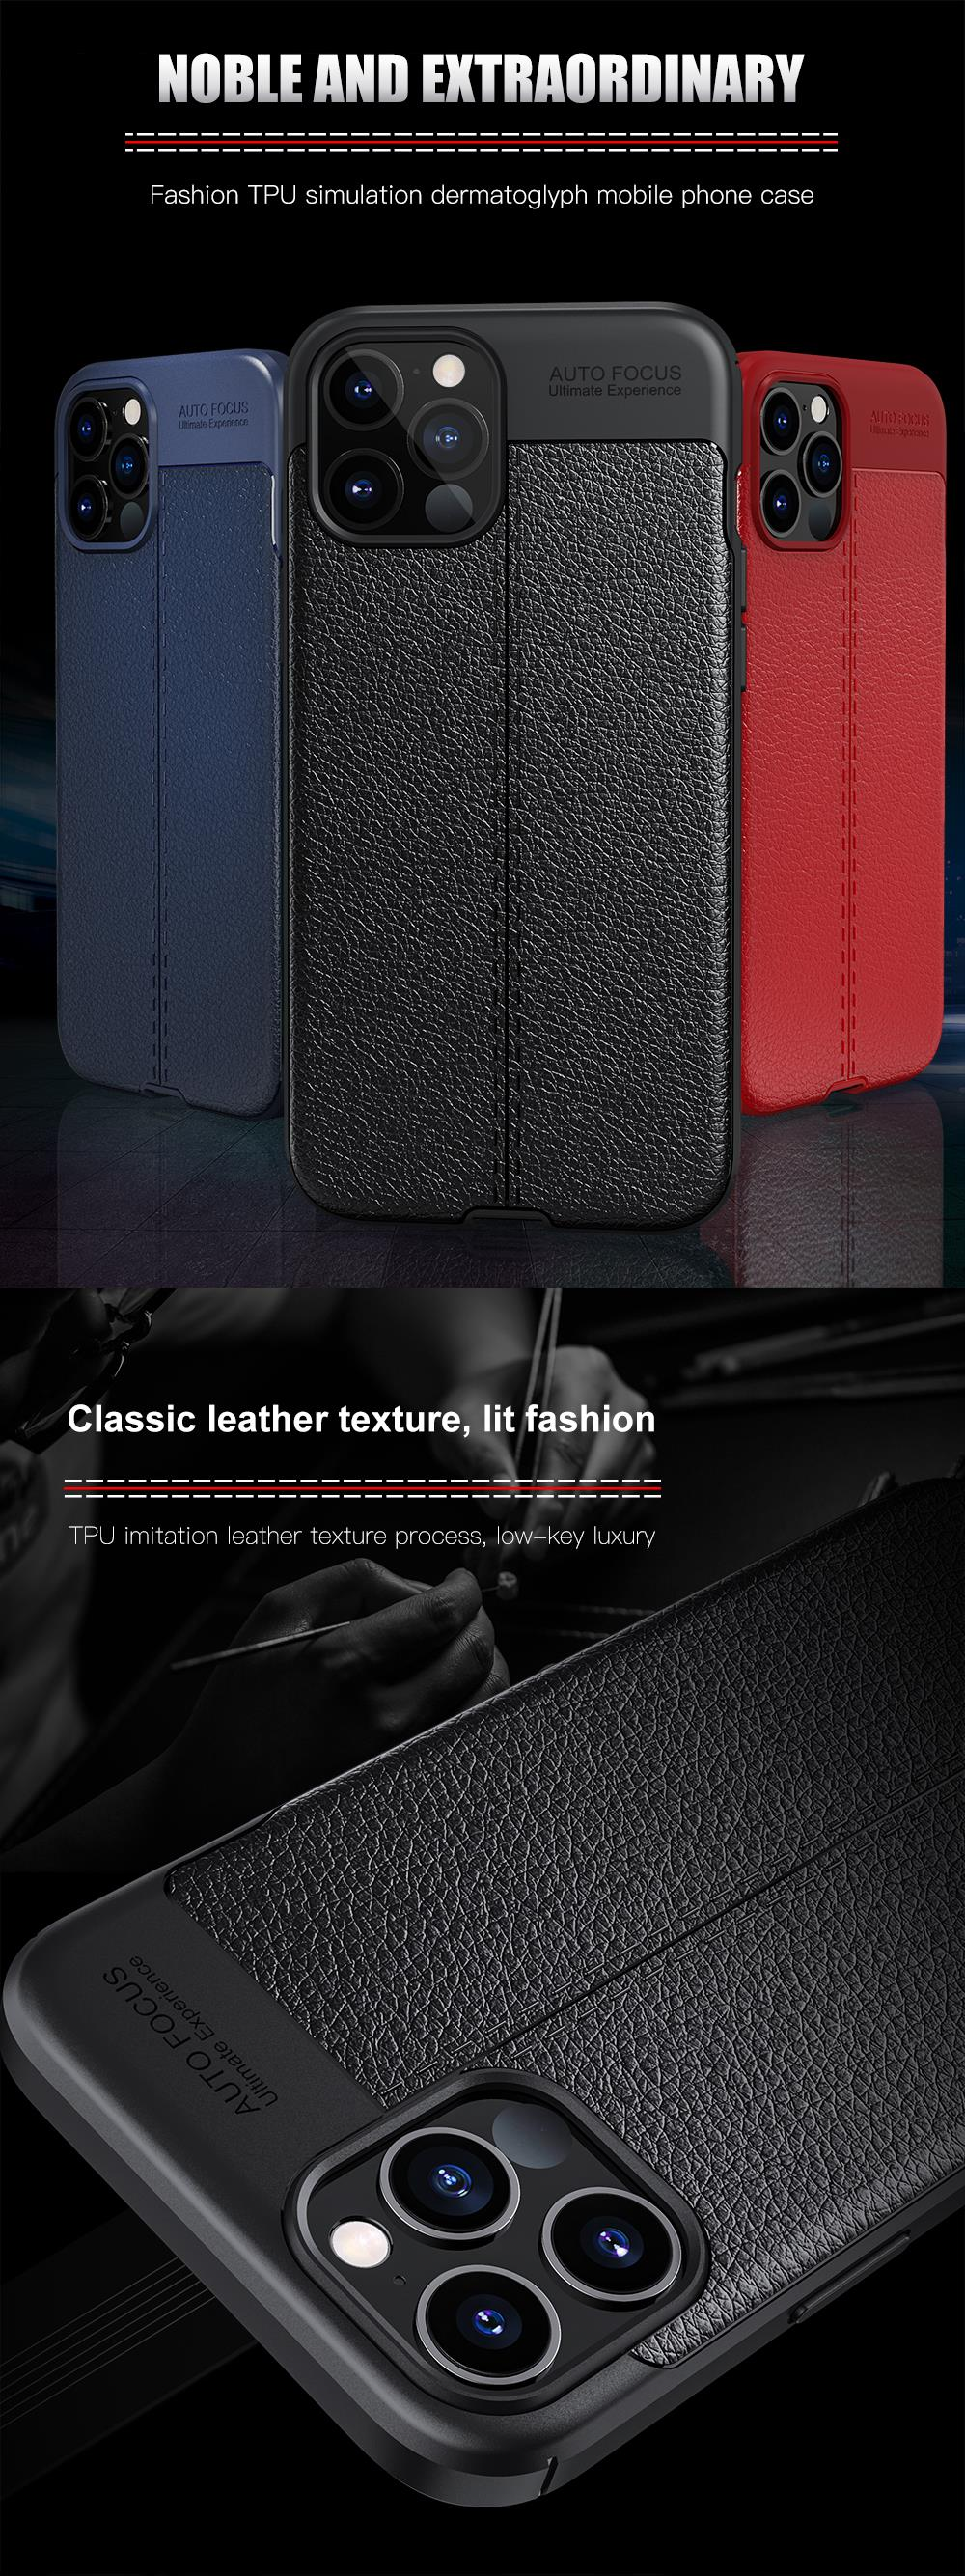 Smart Leather Grained Texture Soft Silicon Phone Case for iPhone 12 Pro Max TPU Shockproof Black Cover Heavy Duty Protection for iPhone 12 mini 2020 New